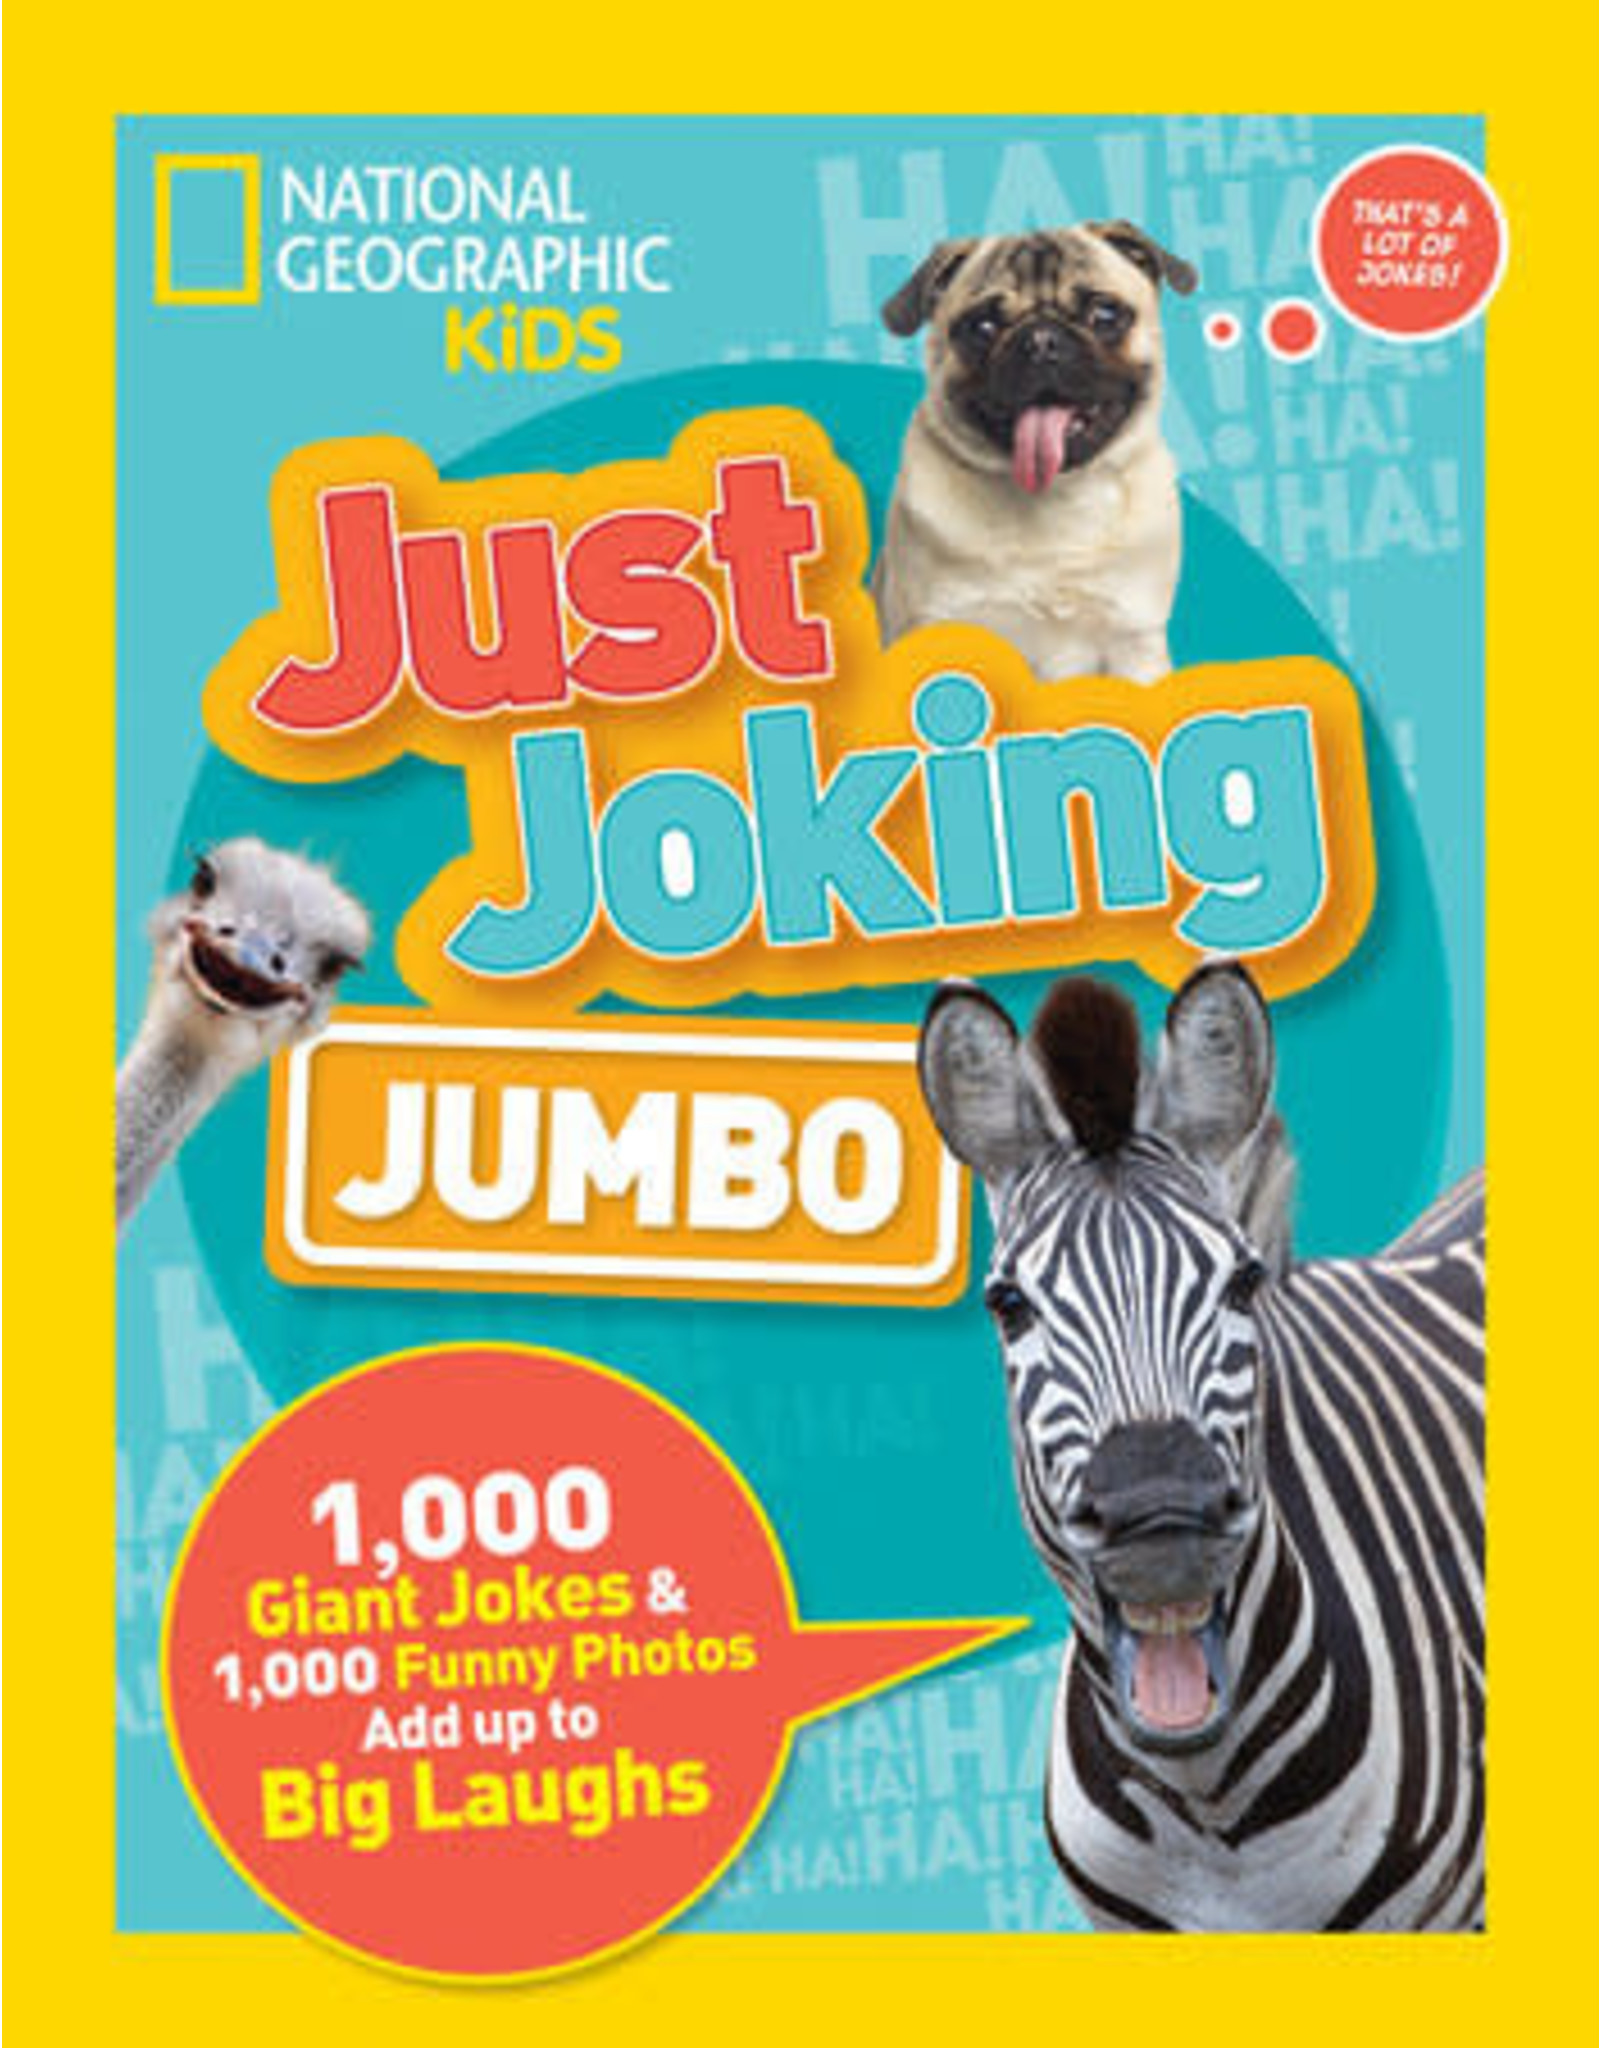 National Geographic Just Joking Jumbo Joke Book